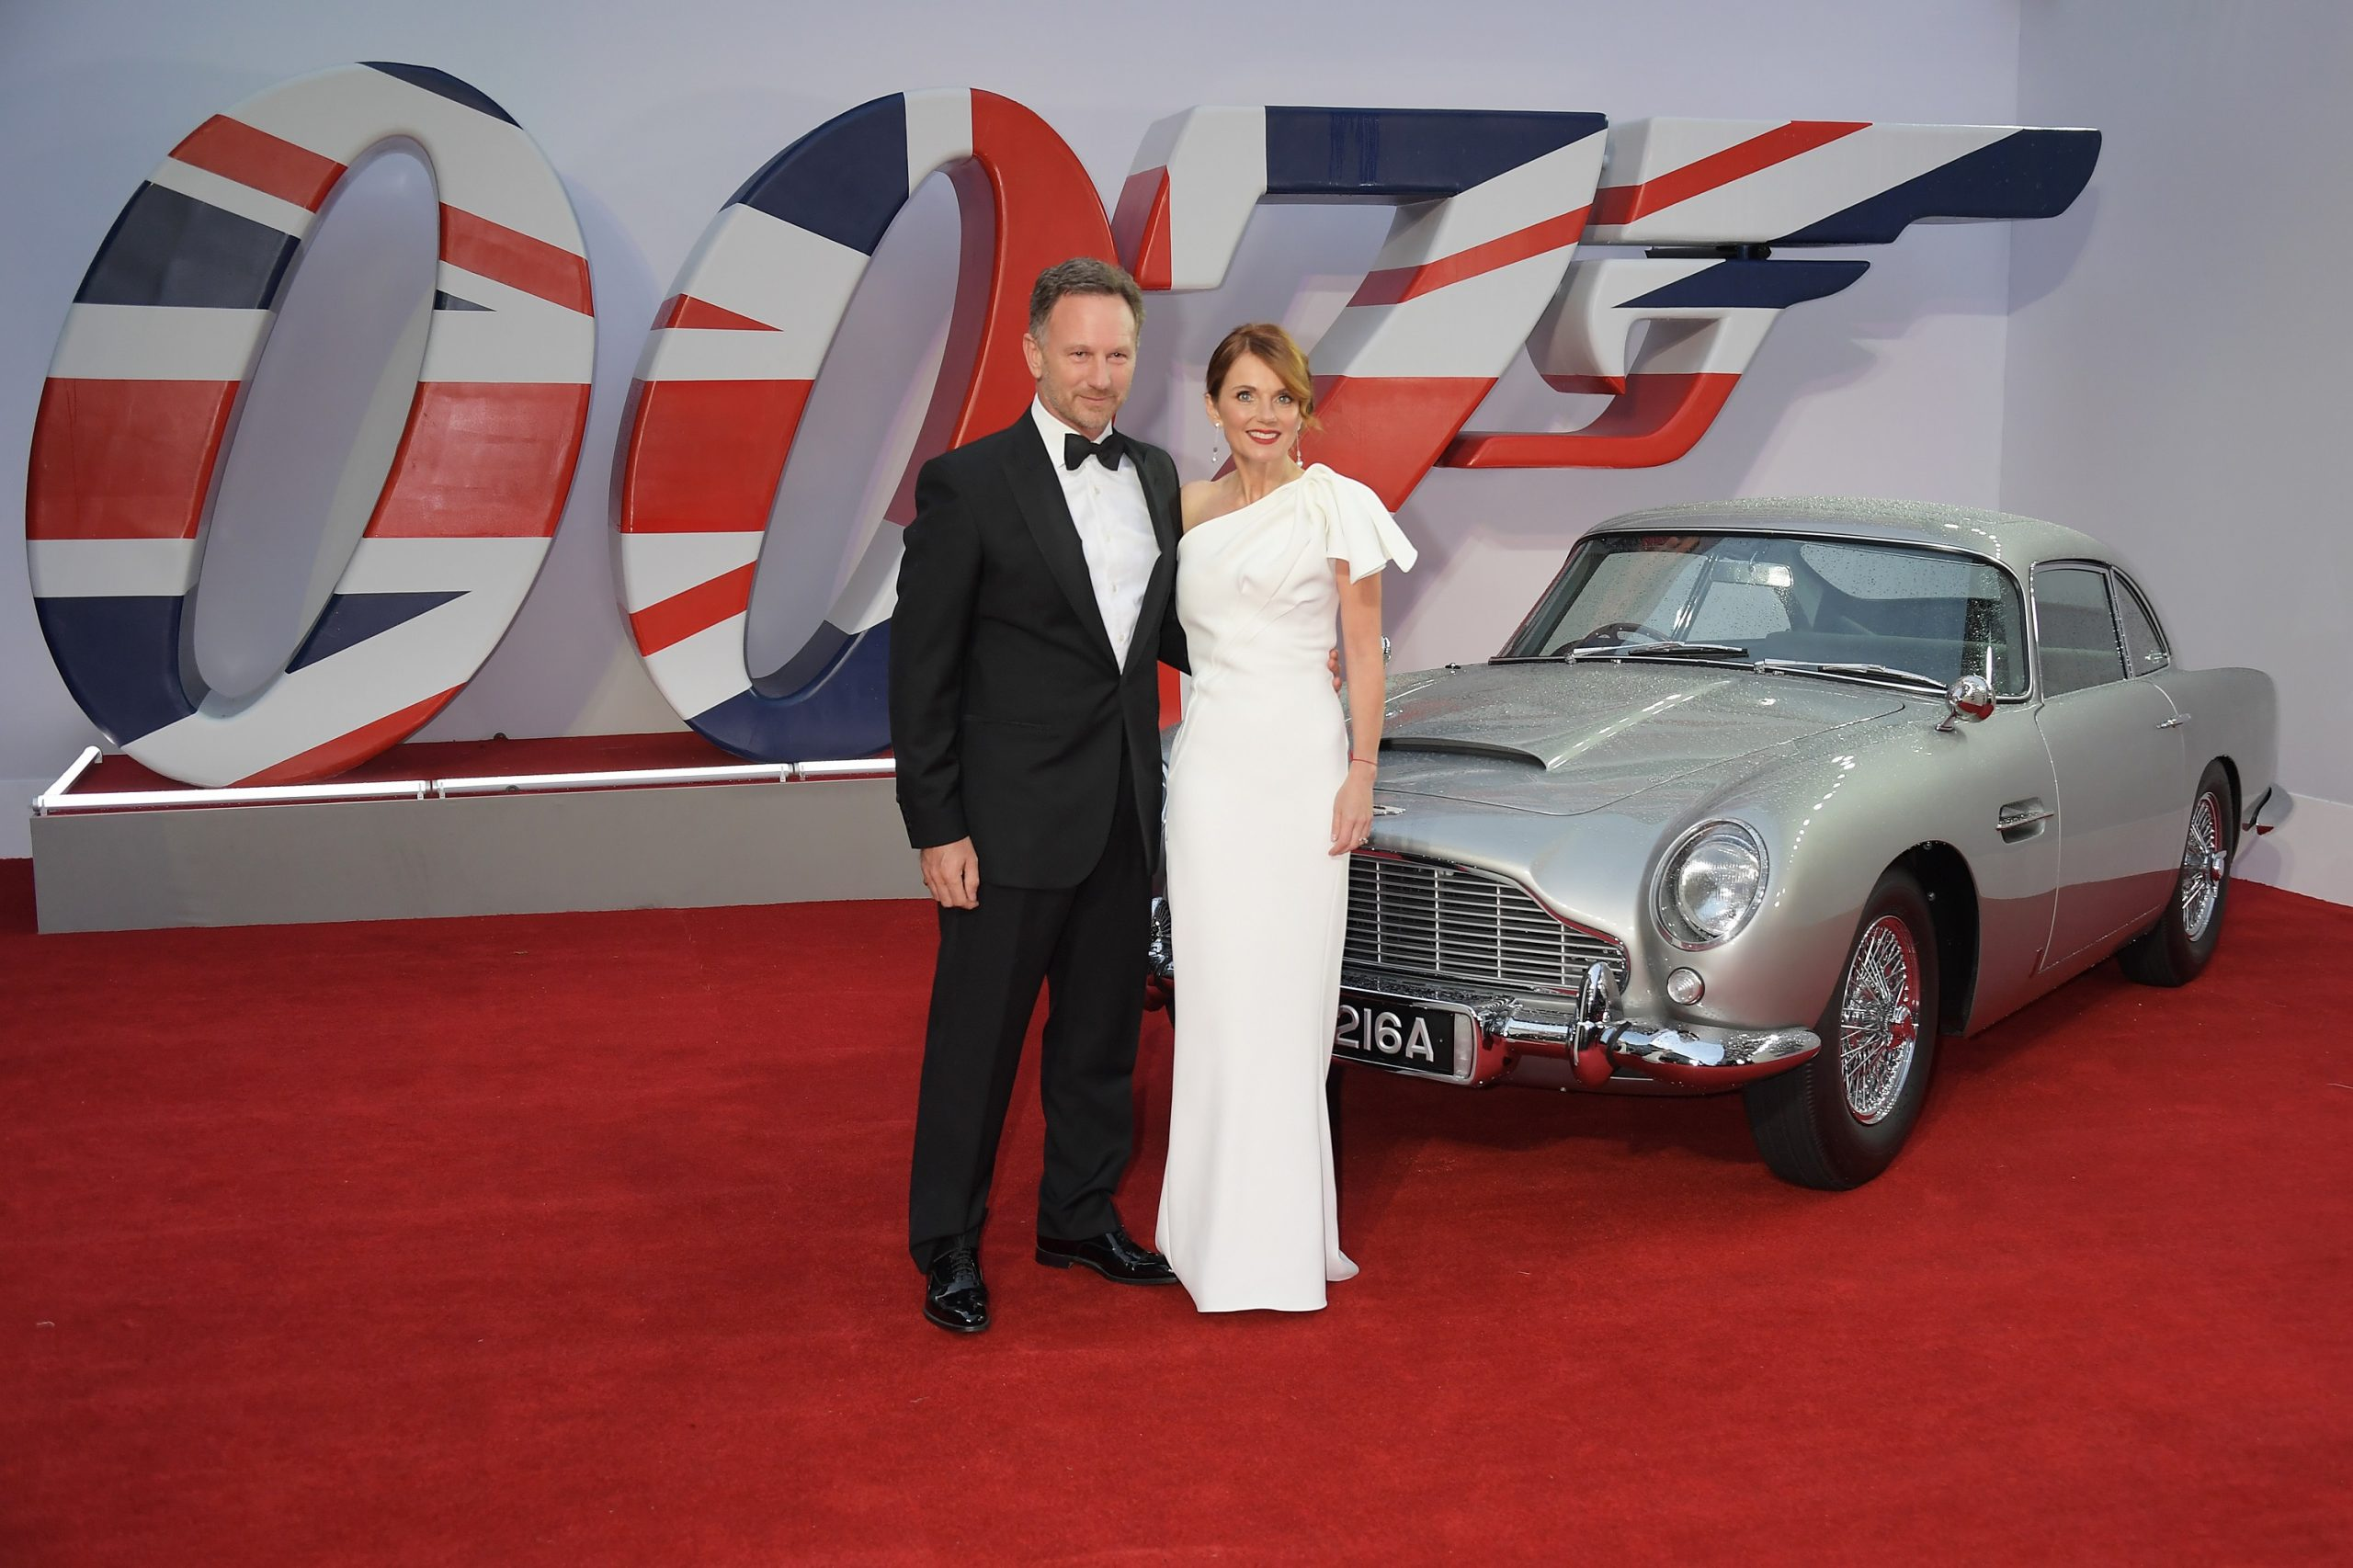 """Christian and Geri Horner at the """"No Time to Die"""" premier, with an Aston Martin DB5 in the background"""